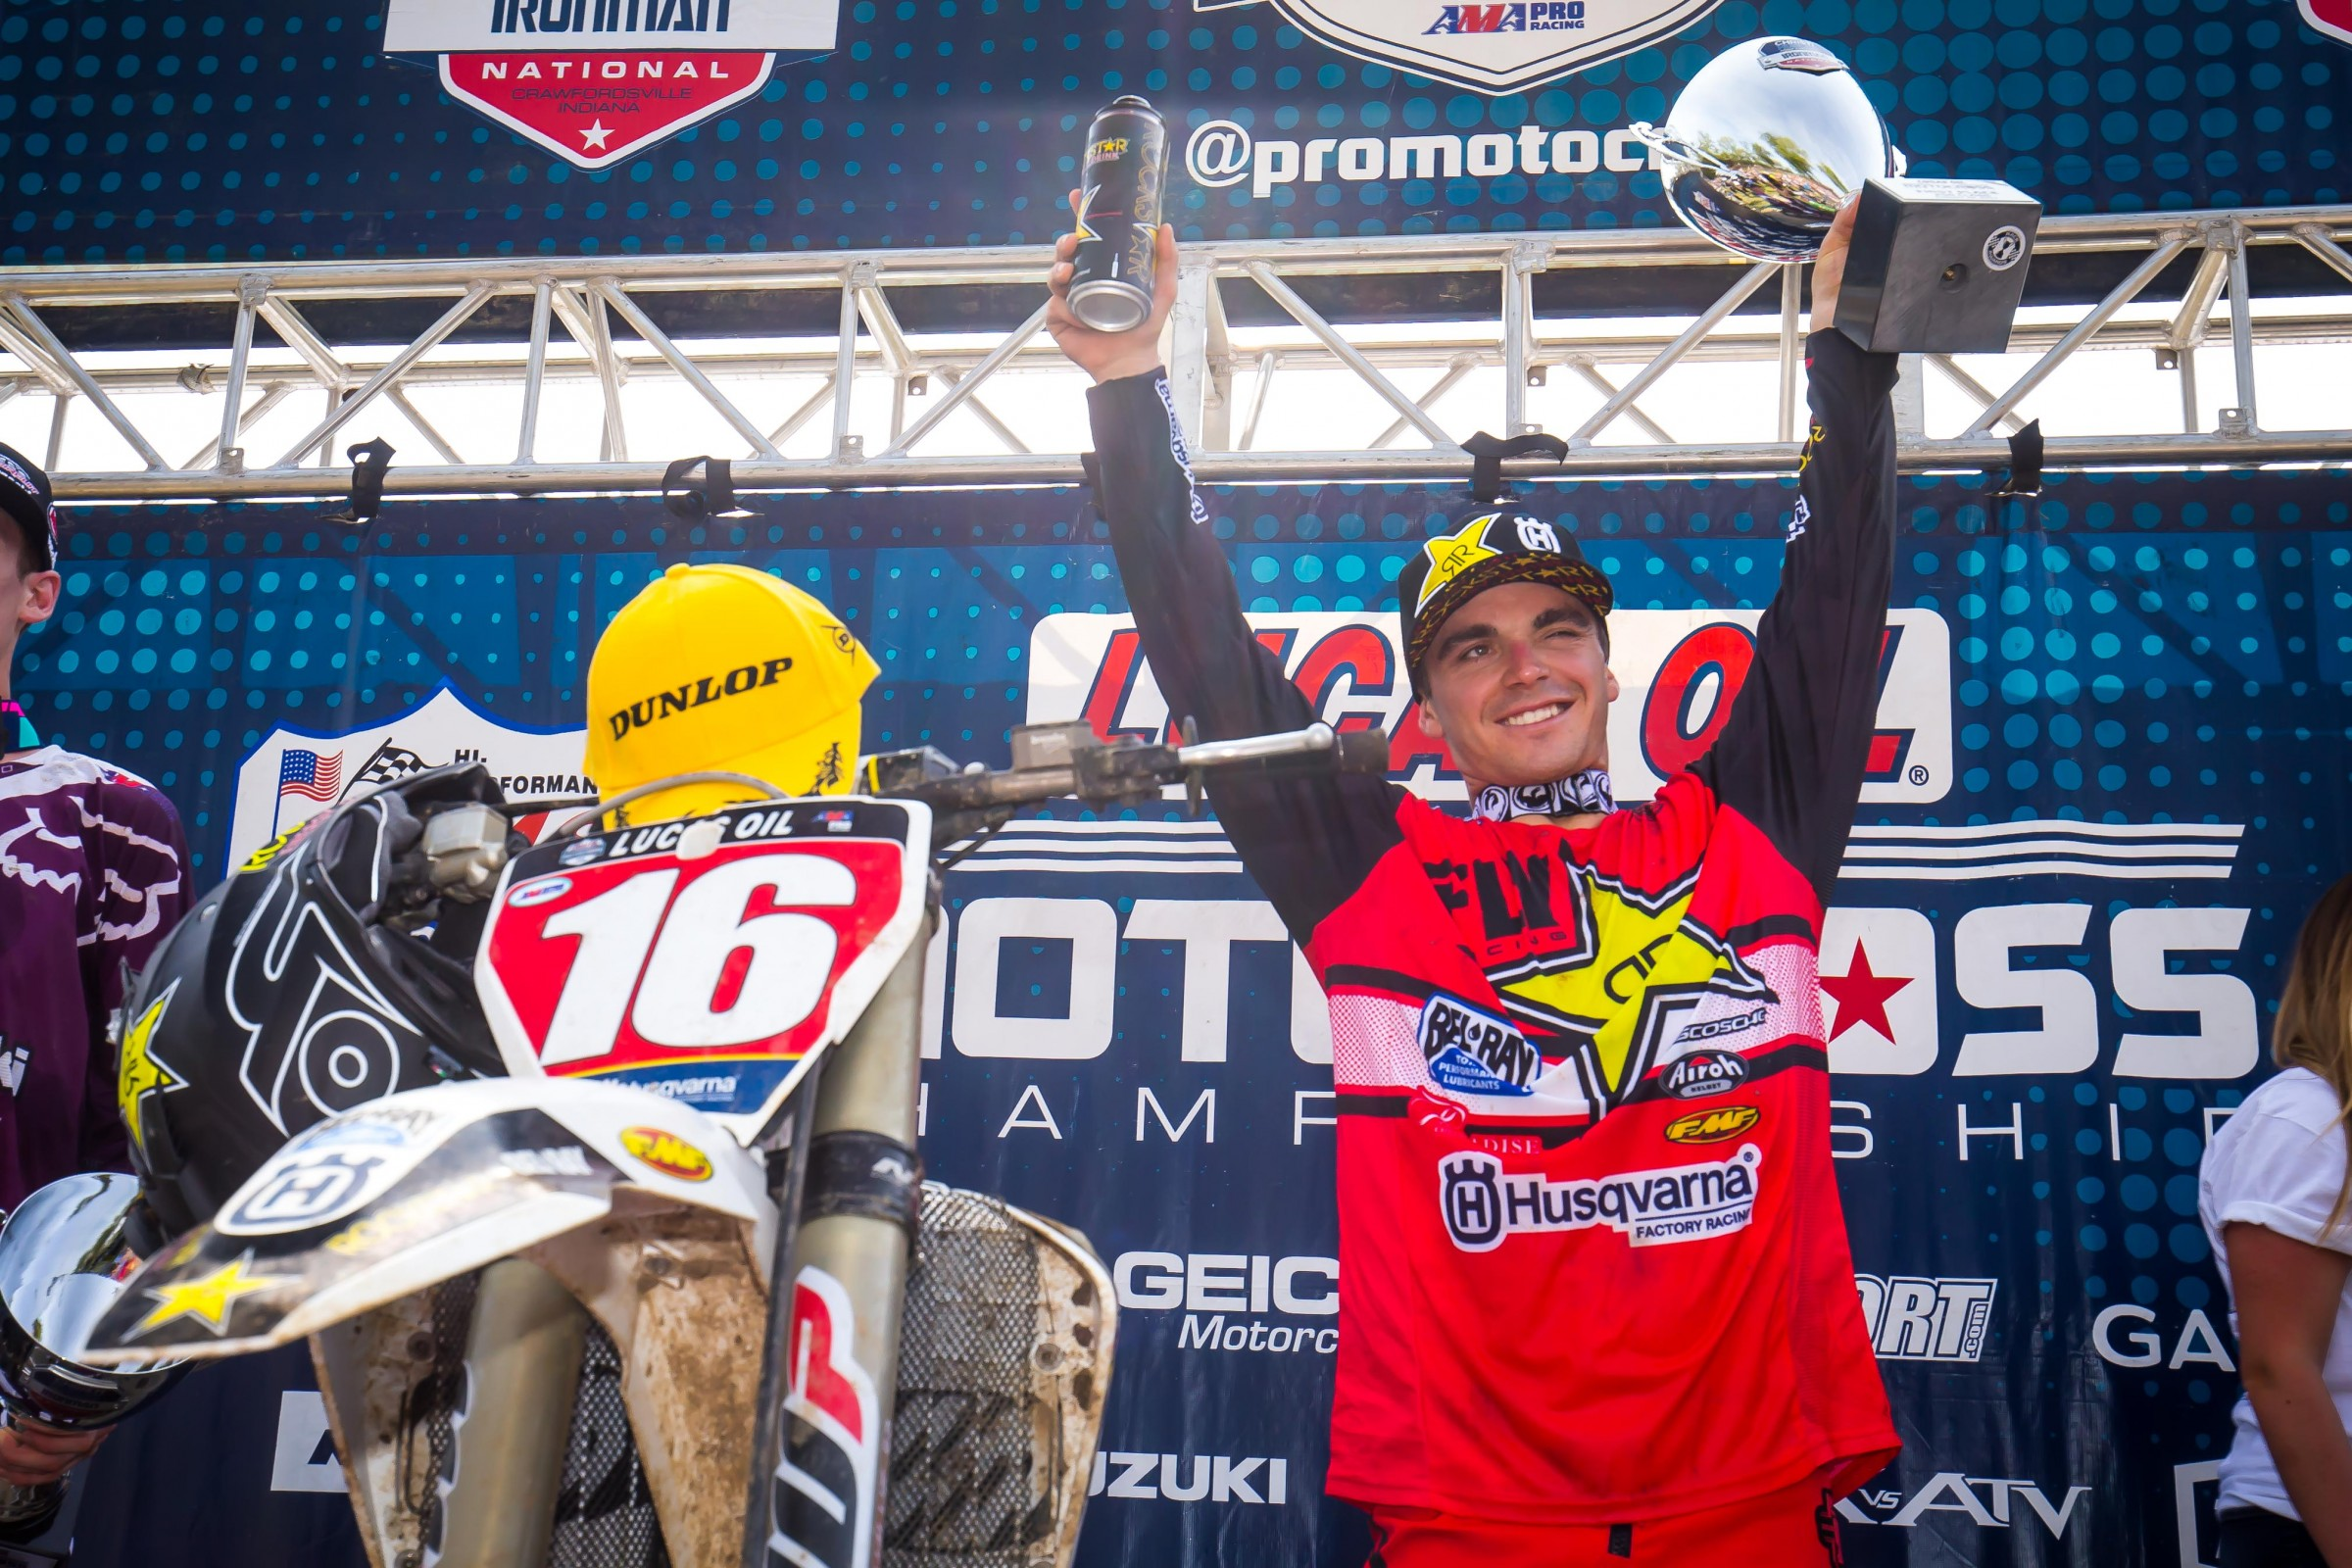 Osborne is coming into his Lucas Oil Pro Motocross title defense with the 2018 Monster Energy Supercross 250SX East Region Championship under his belt.